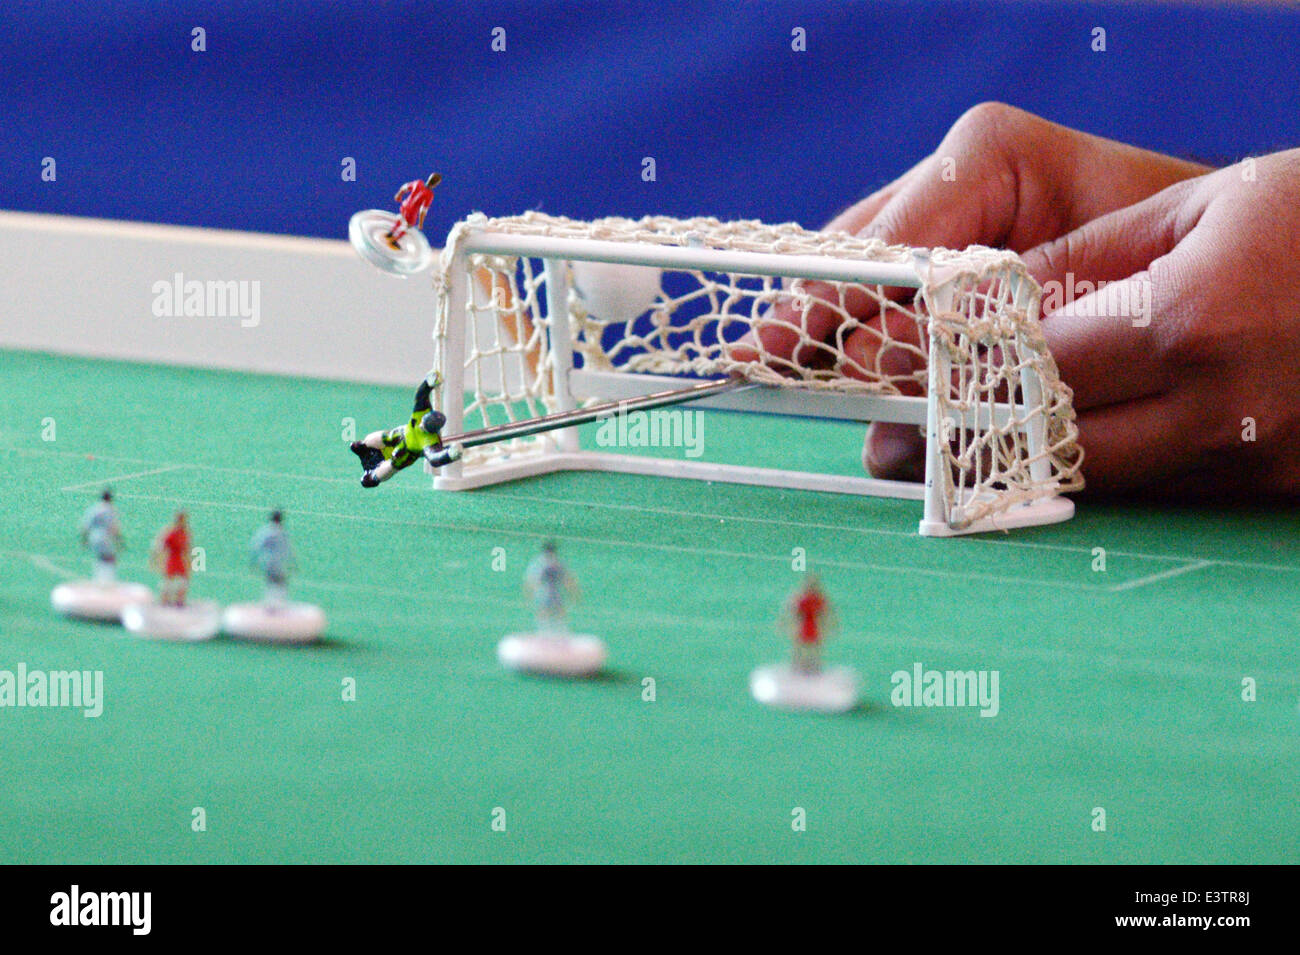 Singapore. 29th June, 2014. A table football enthusiast participates in the National Championships in Singapore's - Stock Image